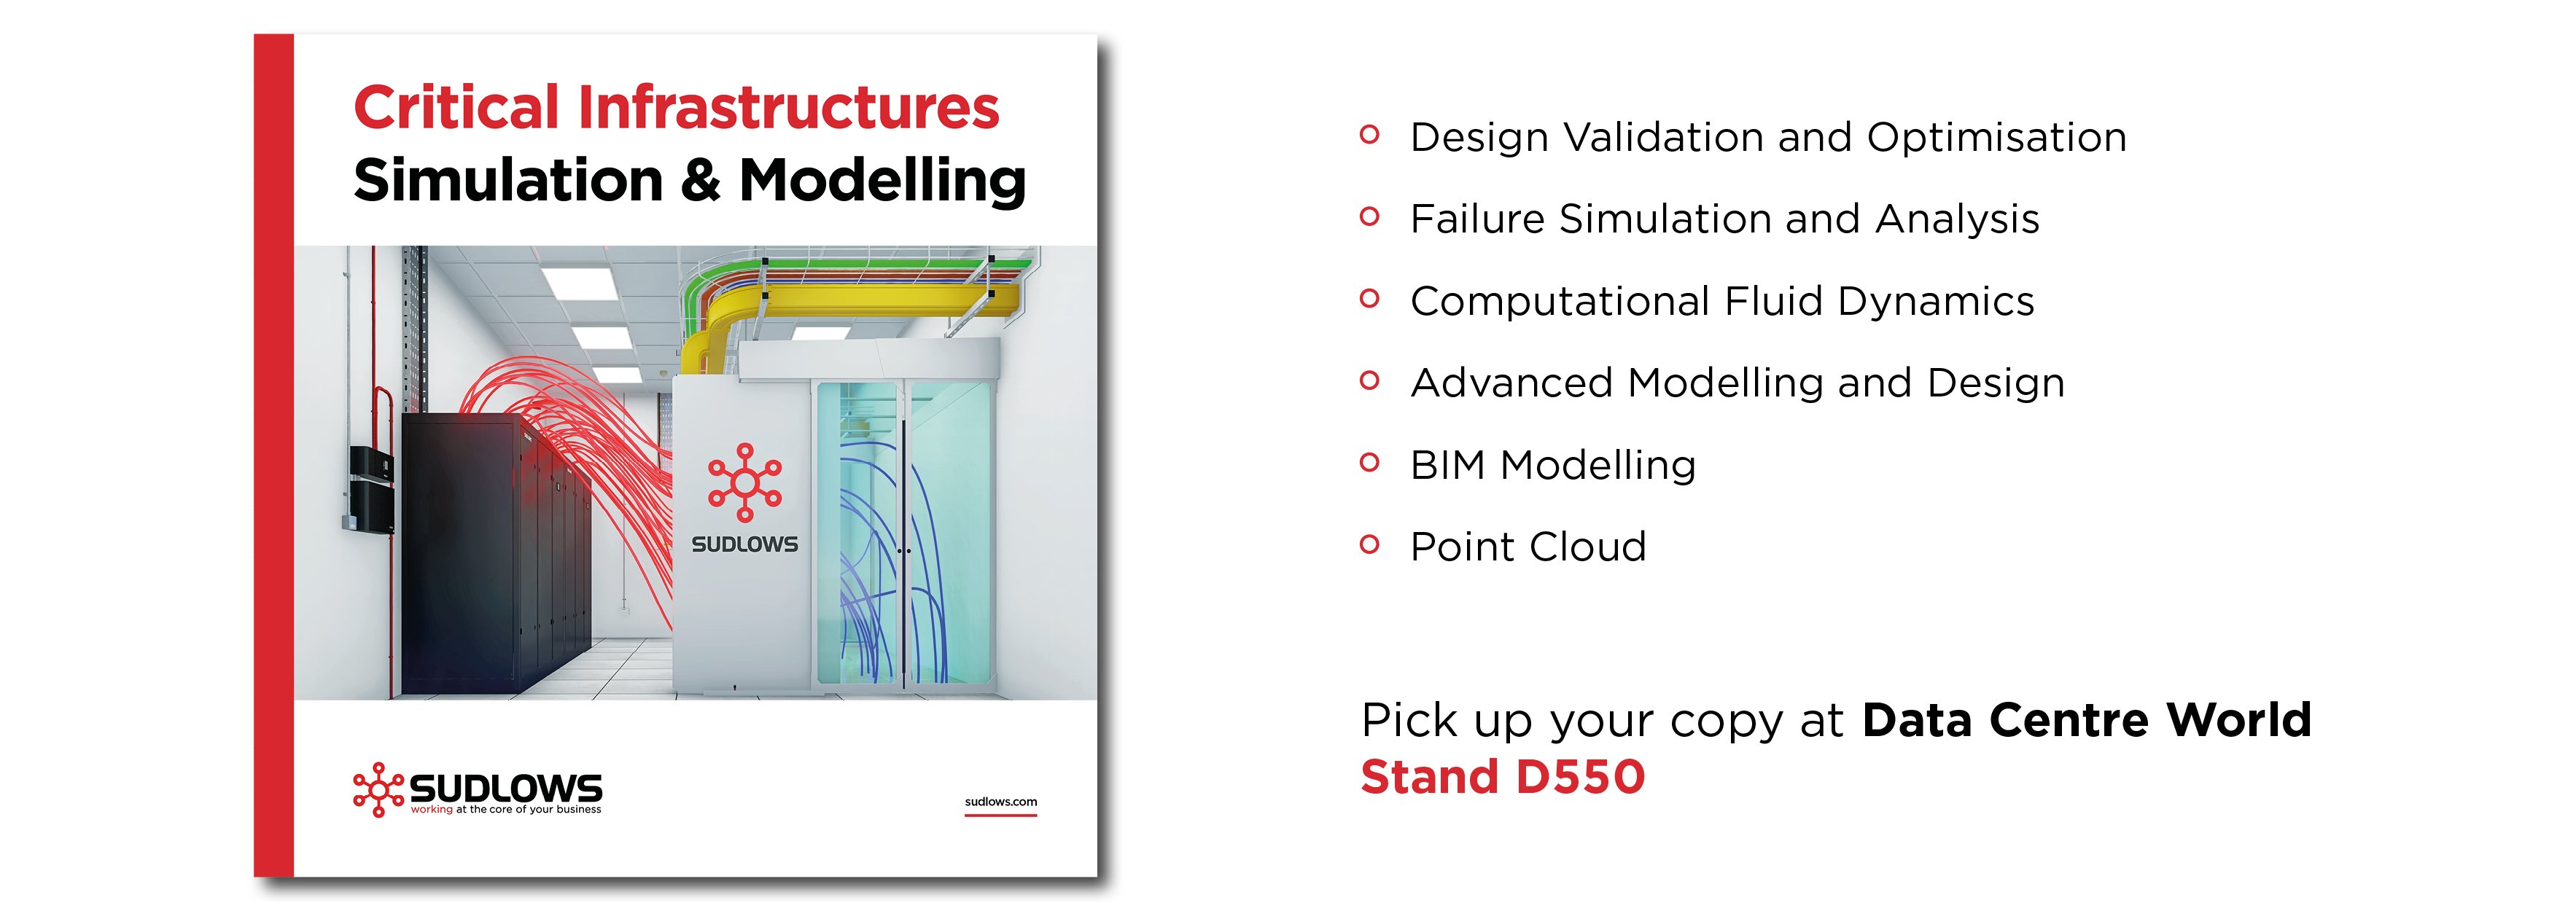 Simulaation and Modelling brochure